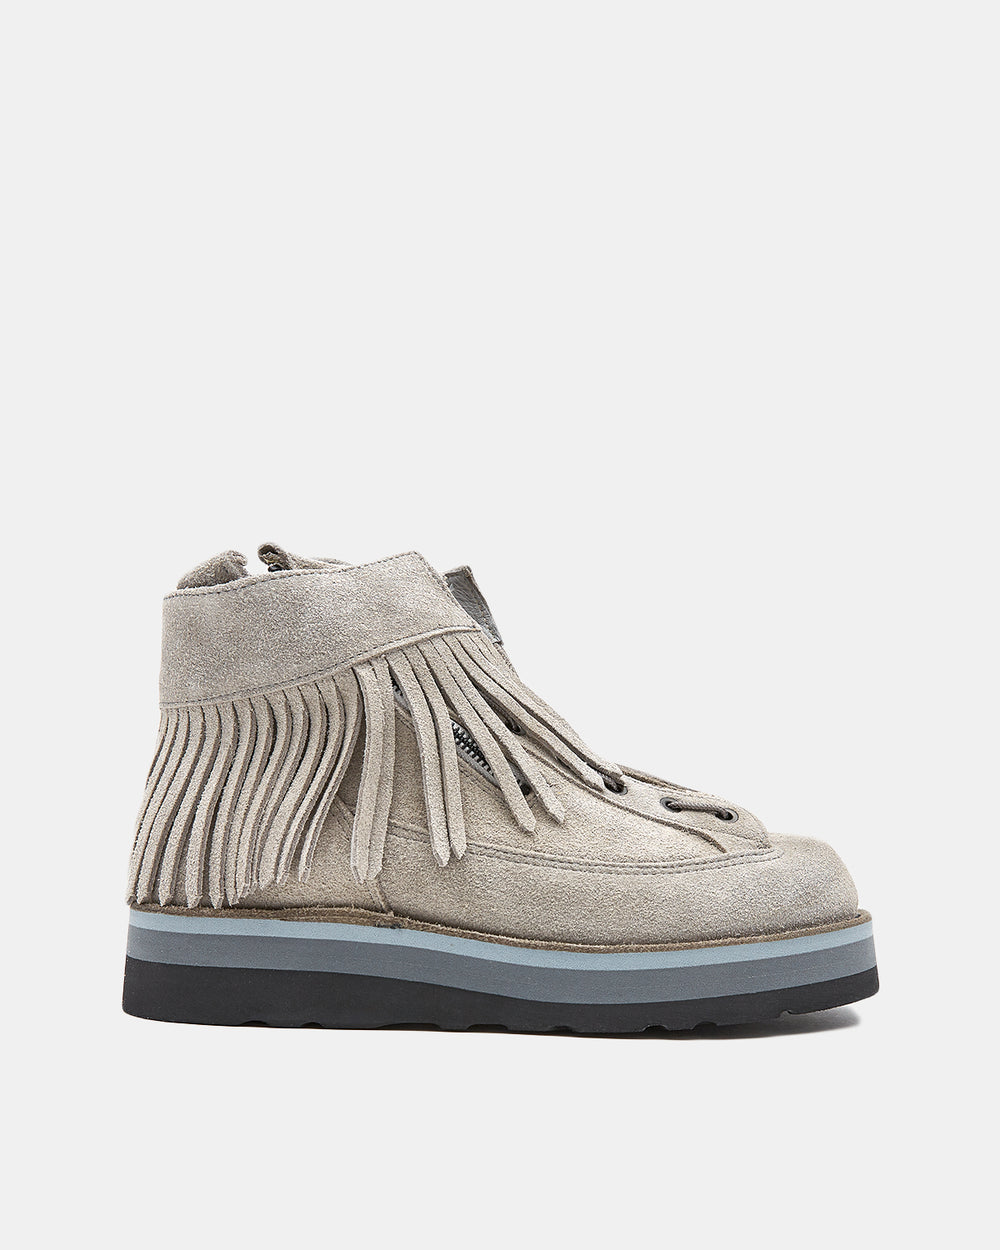 White Mountaineering - White Mountaineering x Danner Suede Boots (Light Grey)